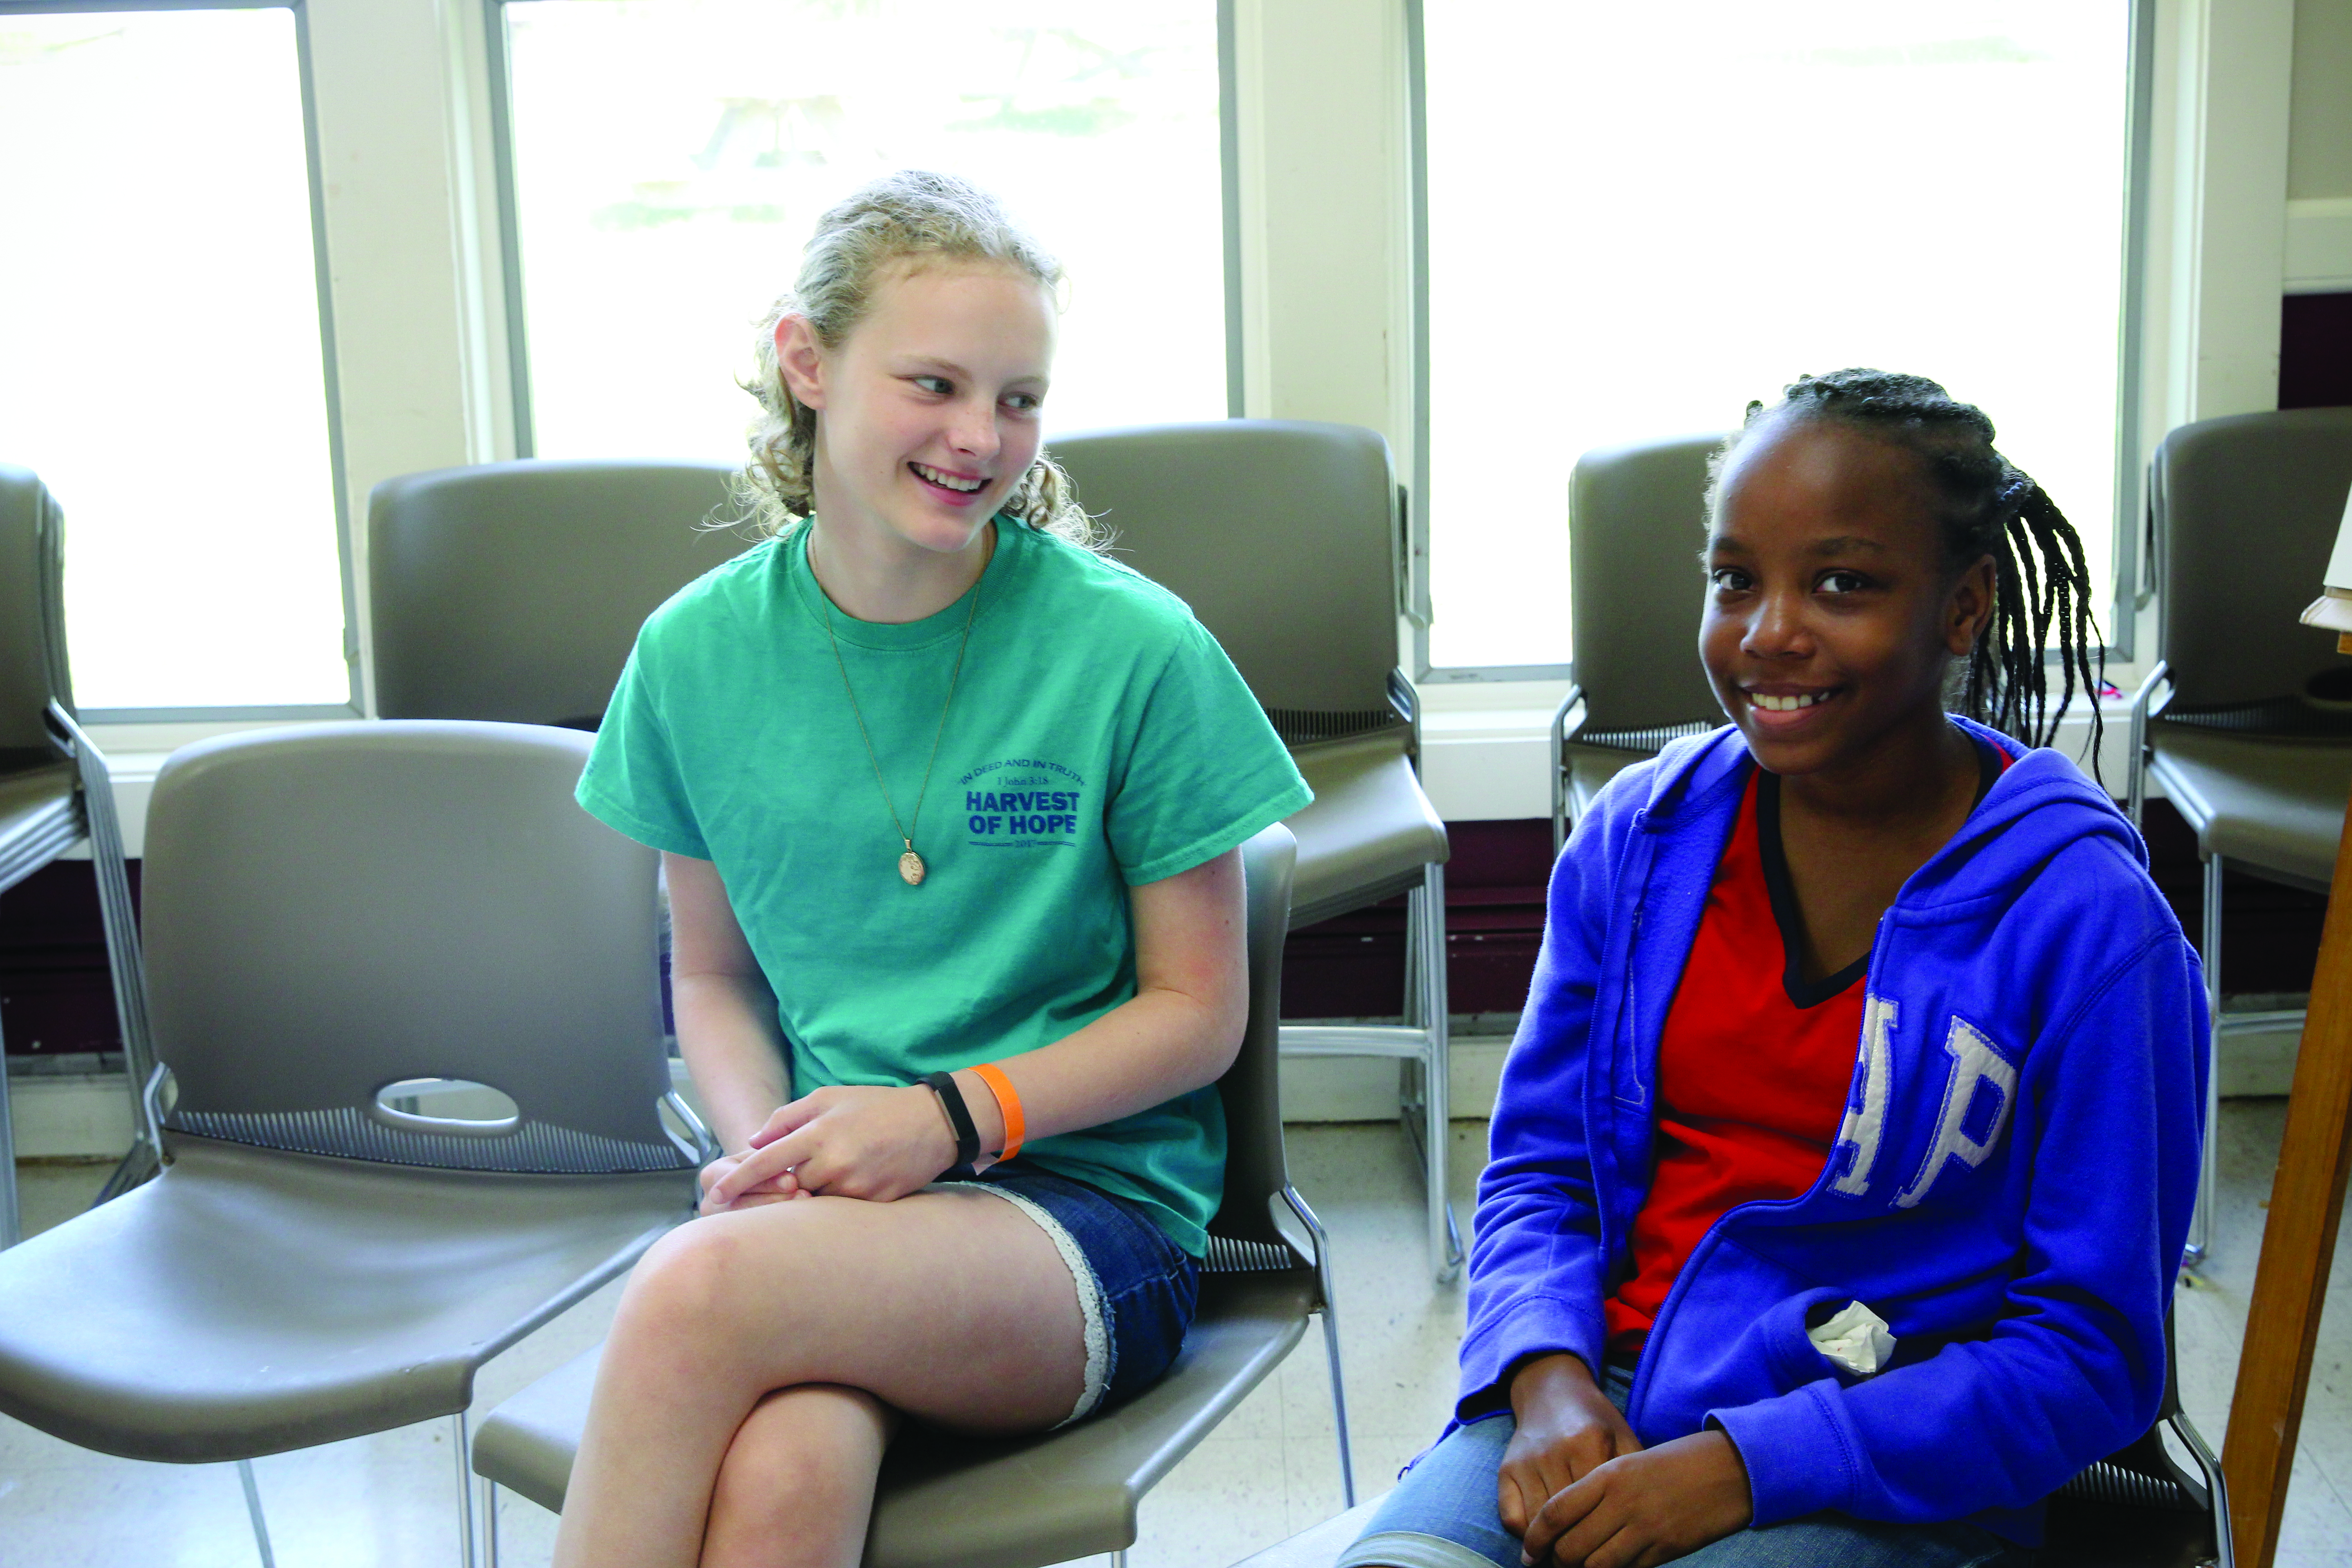 Nora Meeks, left, and Kennedi Jones were two of the campers who learned about leadership at West River Camp this summer. The camp featured guest speakers, including Bishop LaTrelle Easterling, the BWC's first female bishop.